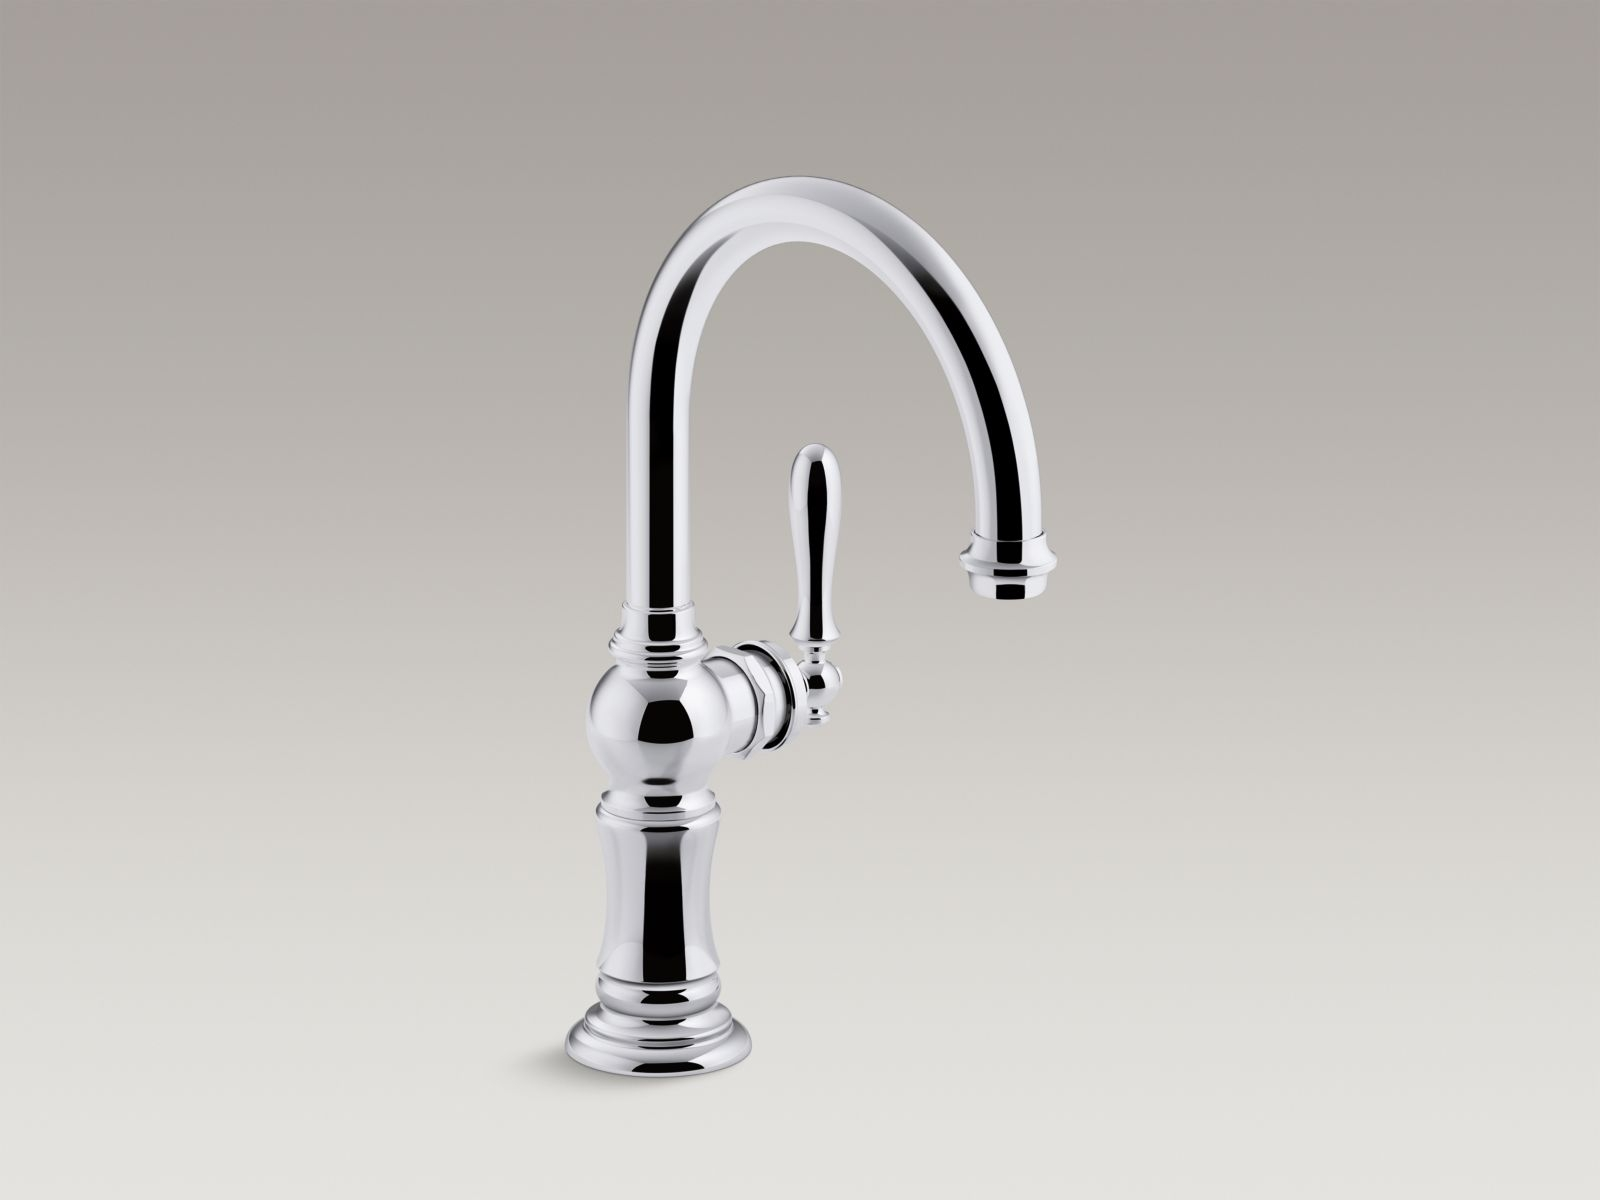 kohler bar sink and faucet kohler bar sink and faucet buyplumbing category bar prep faucet 1600 x 1200